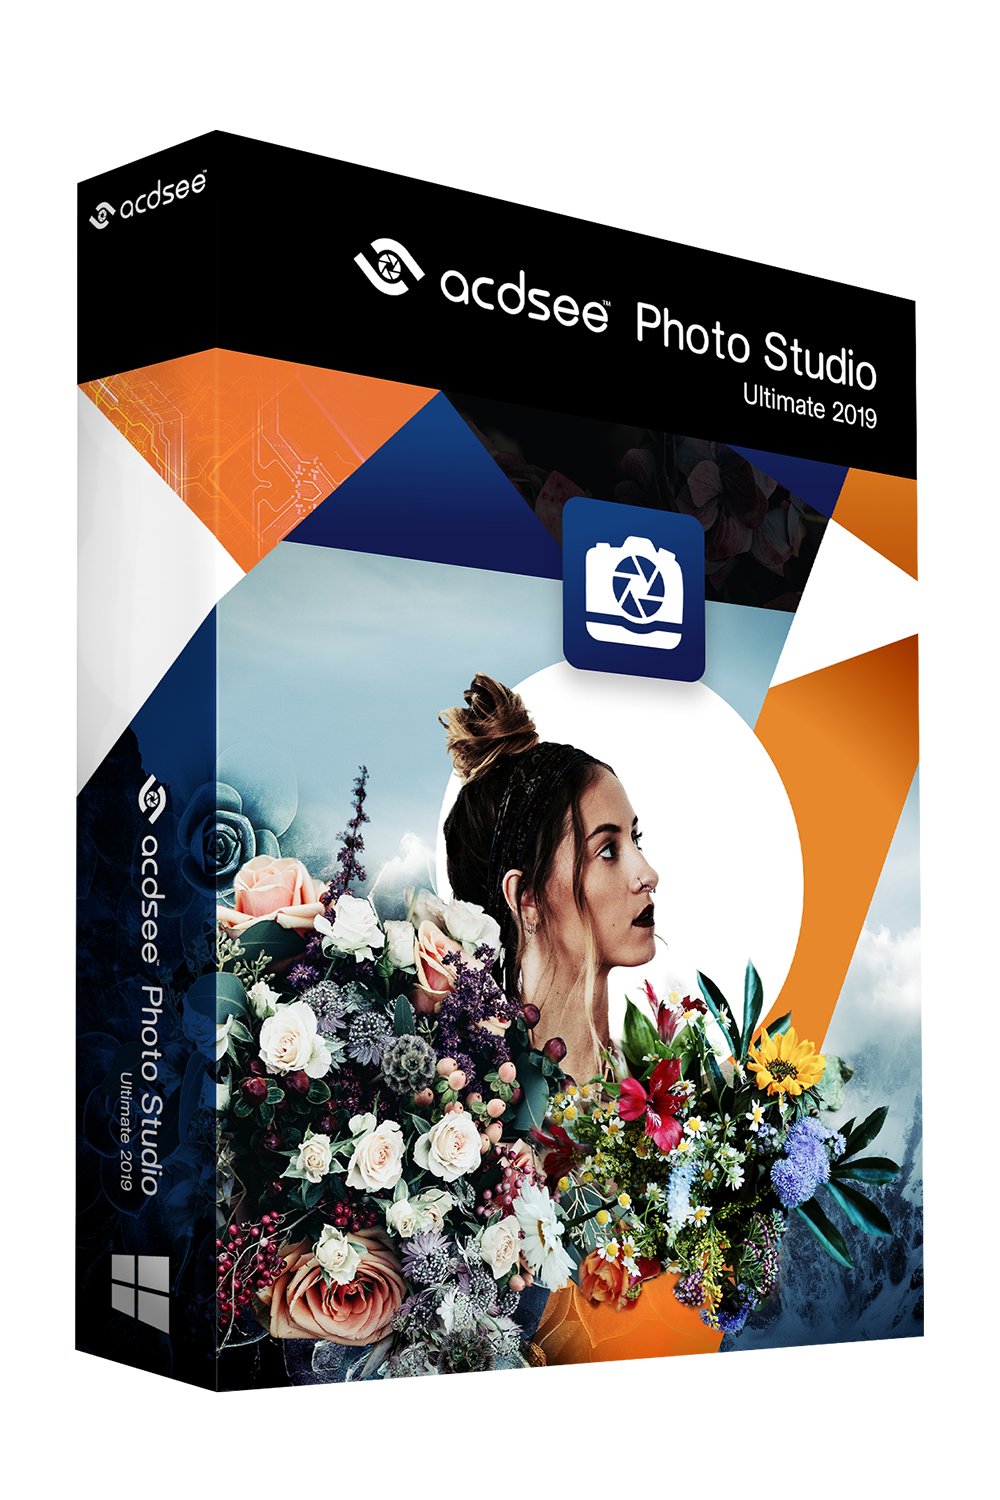 ACDSee PhotoStudio 2019 Ultimate